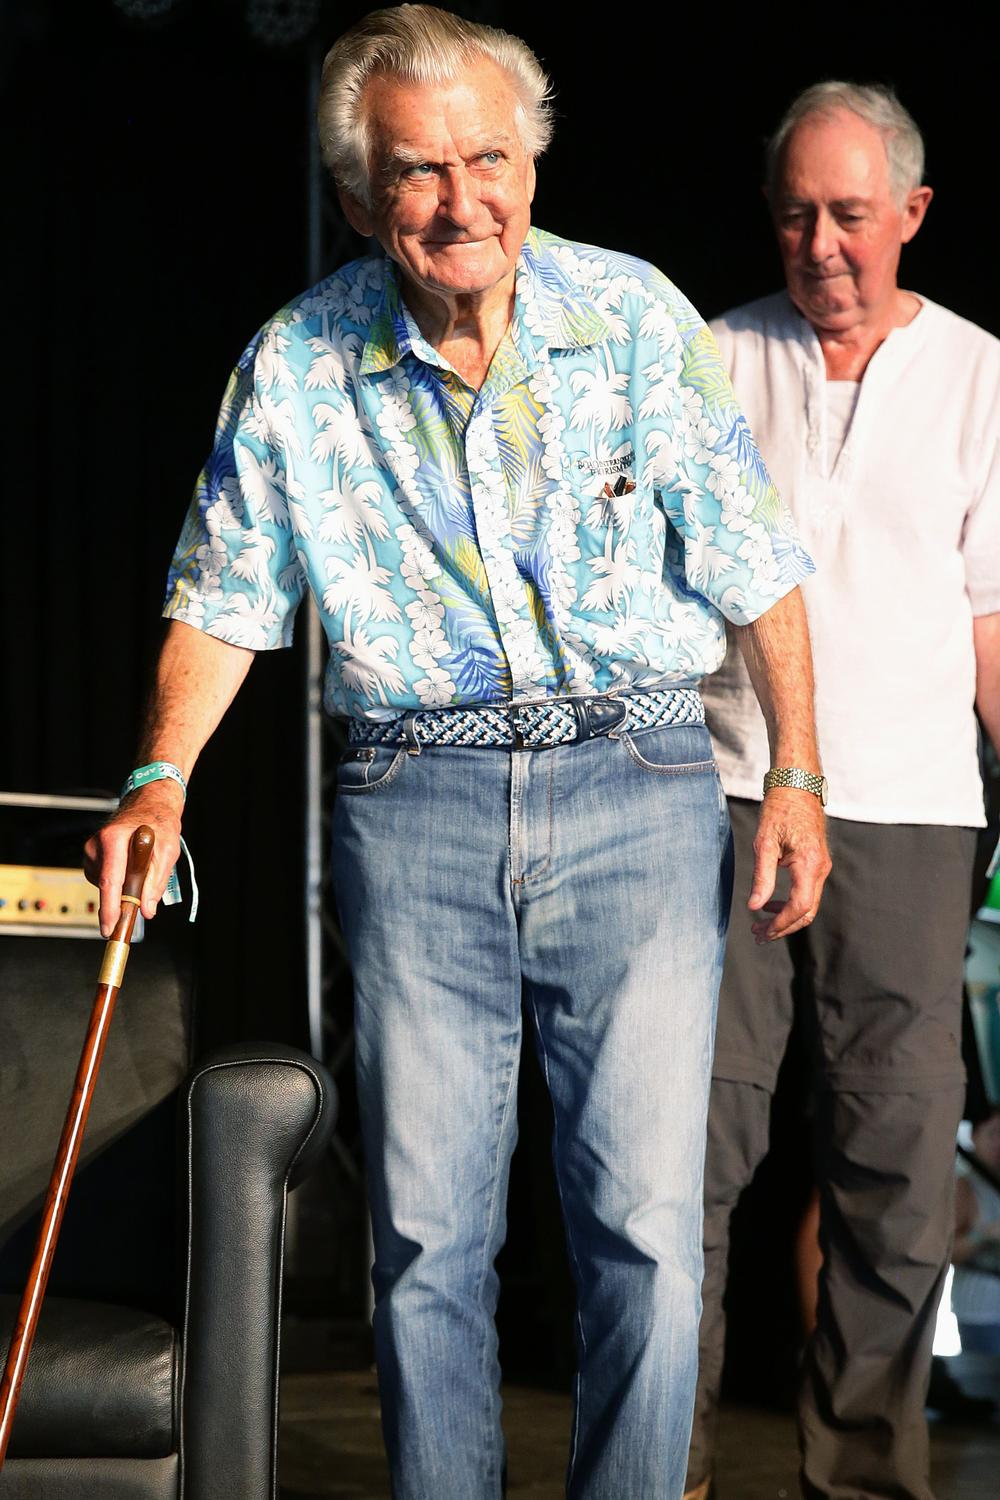 Former prime minister Bob Hawke at the Woodford Folk Festival. Picture: Claudia Baxter/AAP